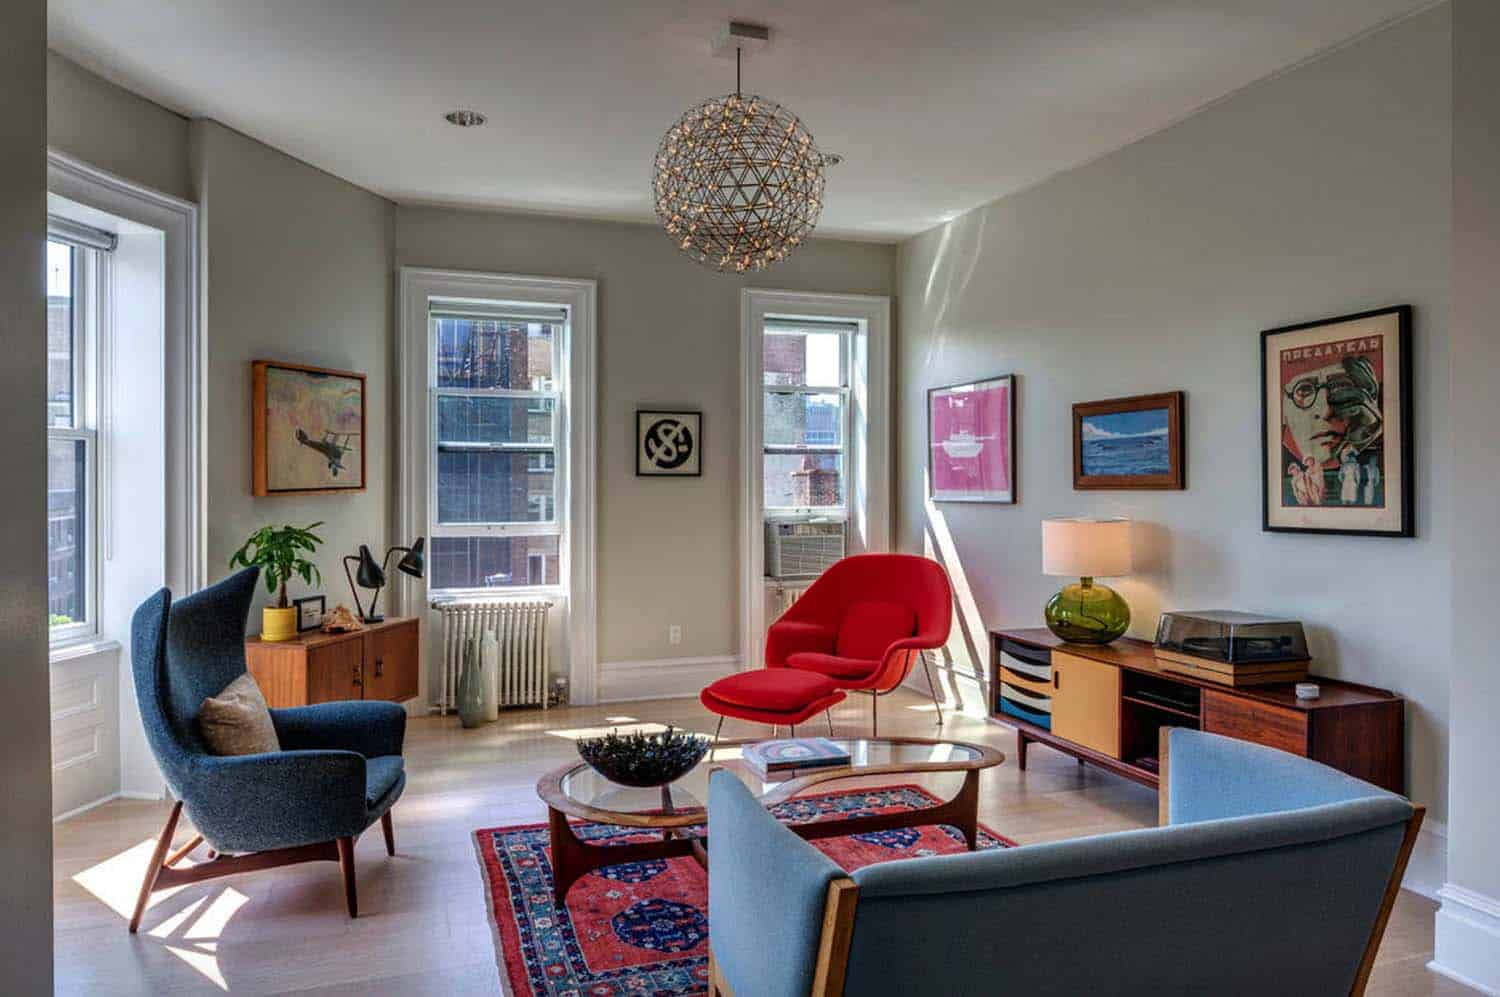 mid century modern living room ceiling fan in picture 38 absolutely gorgeous ideas the stand out piece of furniture this is newark fiber glass lounge arm chair red aeon illuminating space